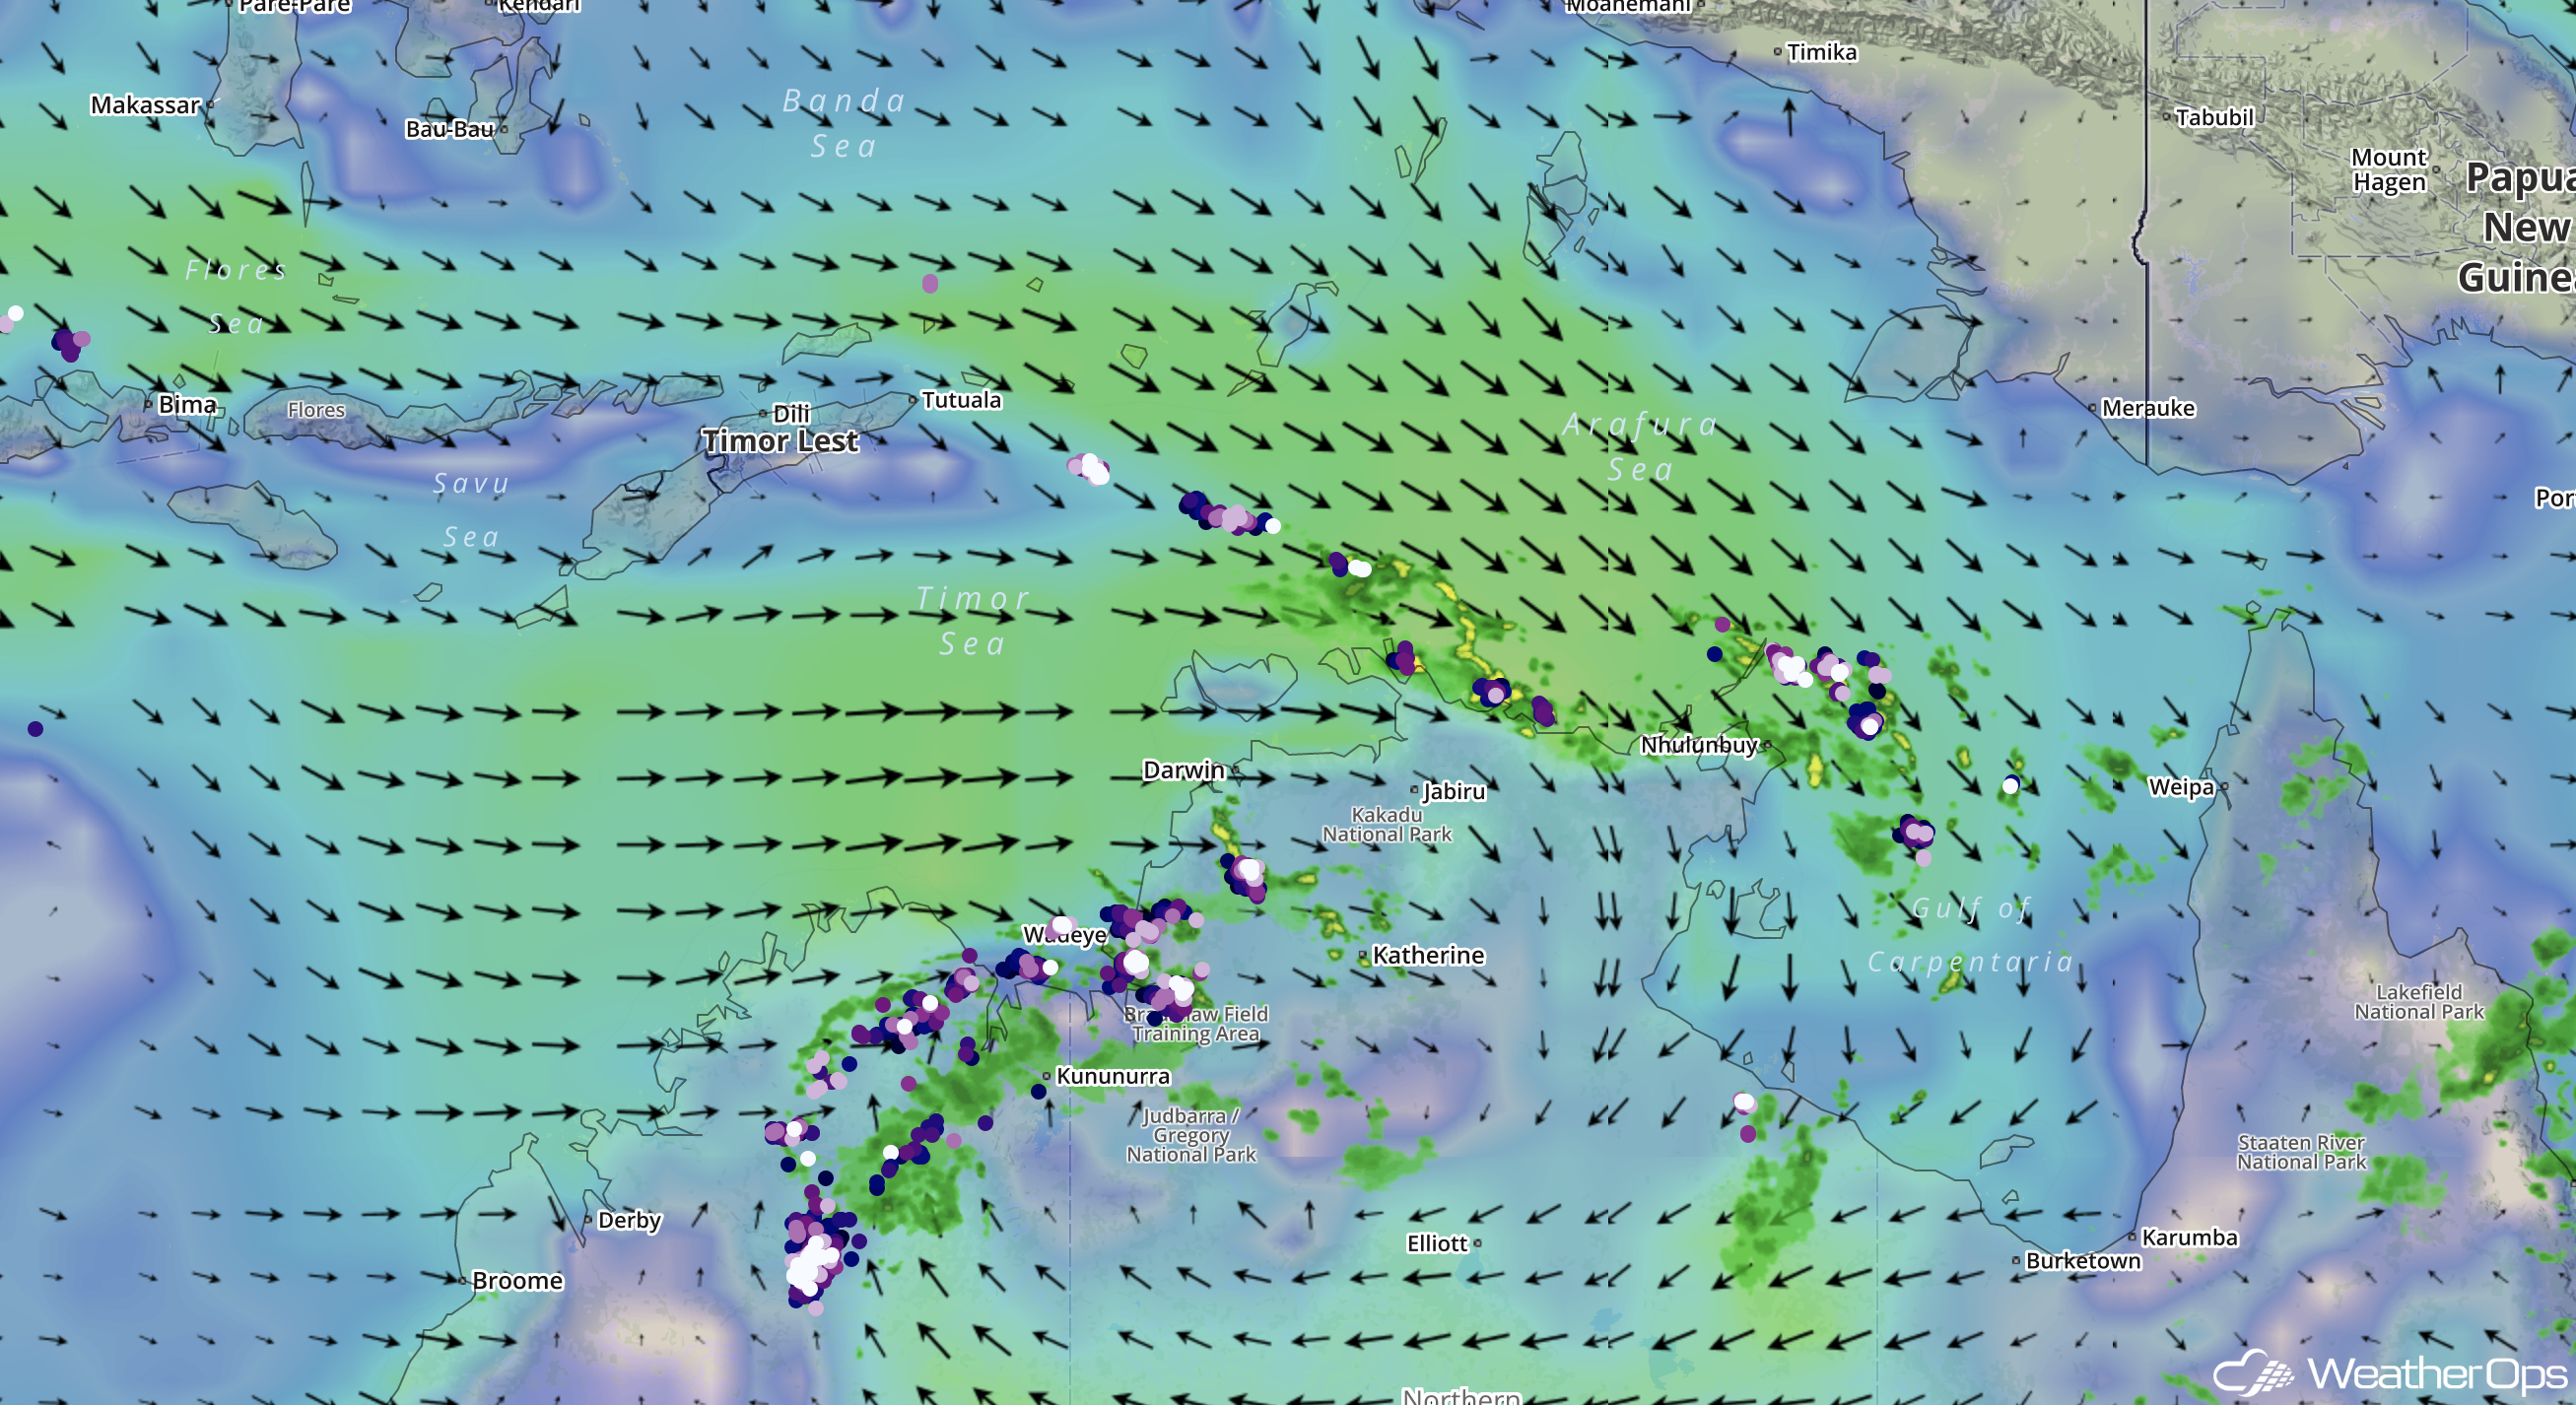 WeatherOps Surface Winds & Convective Activity over northern Australia